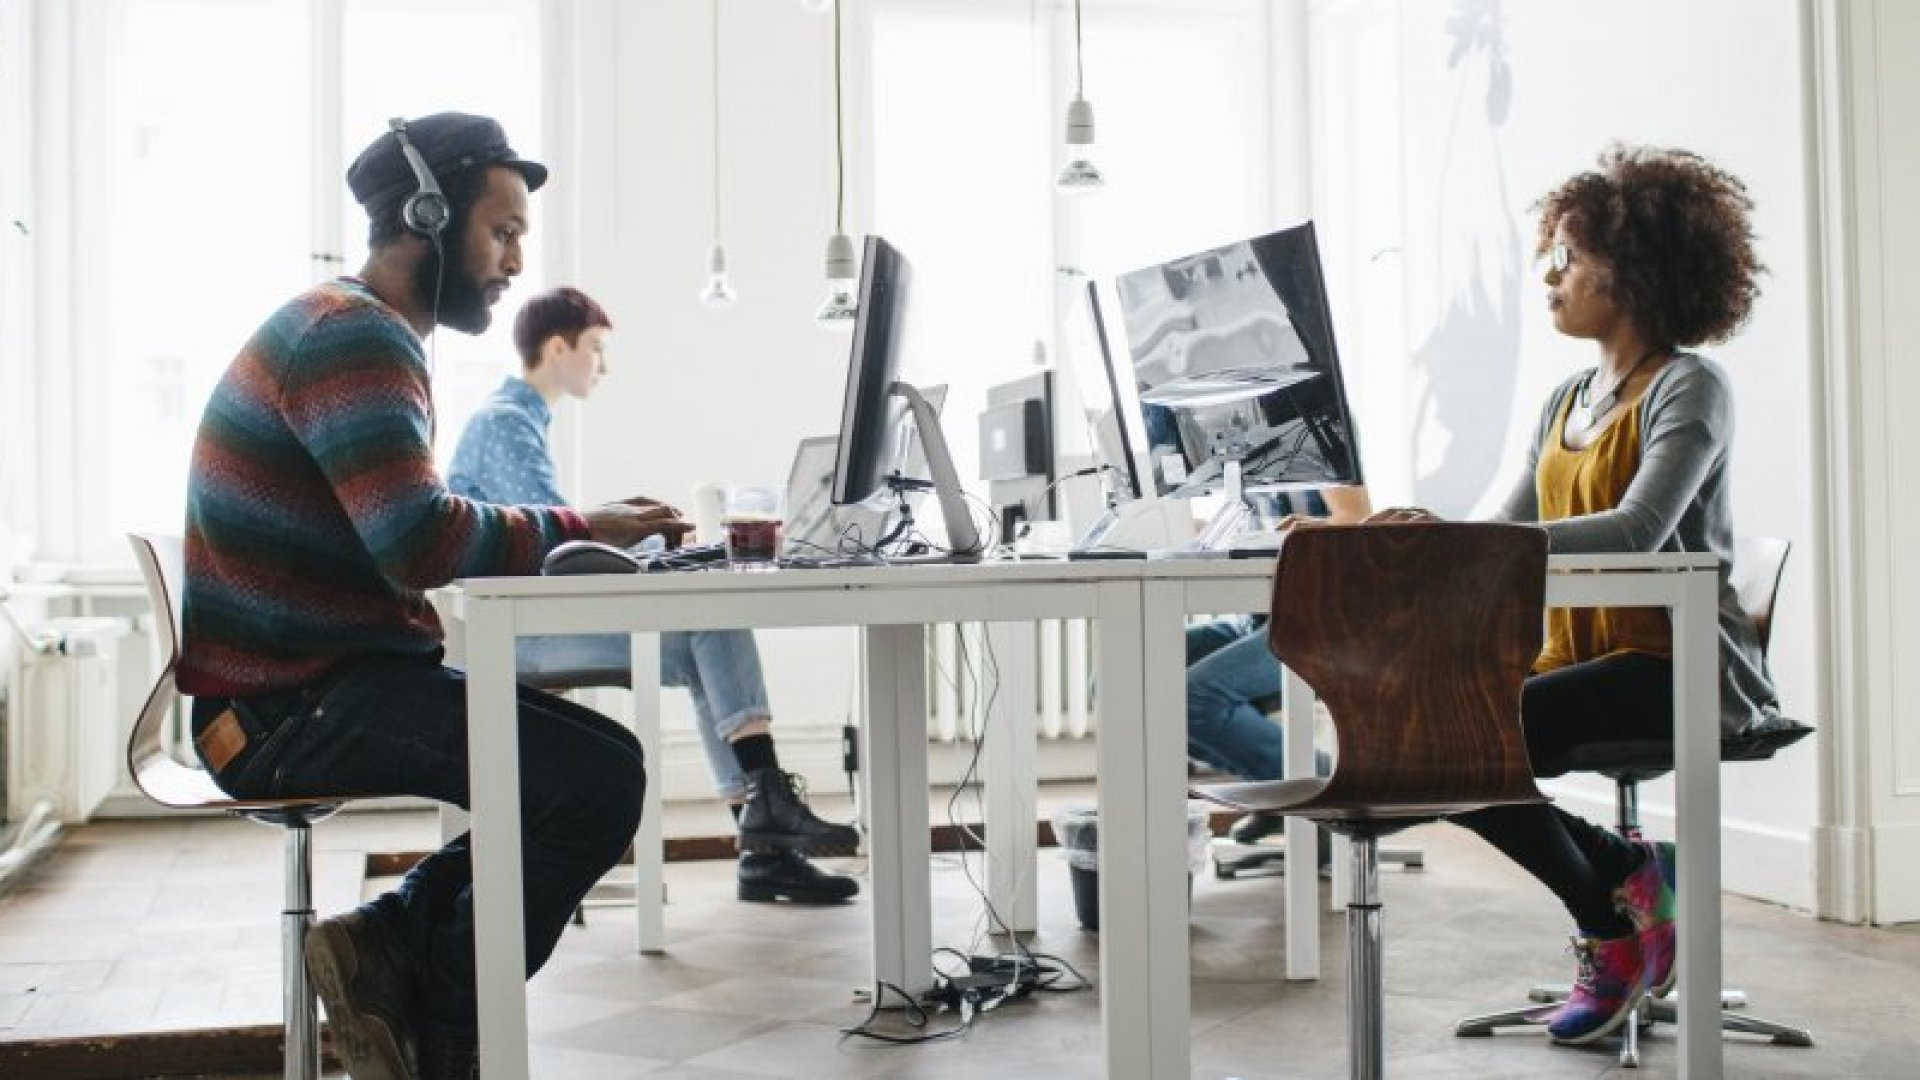 Want to Motivate Your Millennial Employees? Focus on These 4 Areas